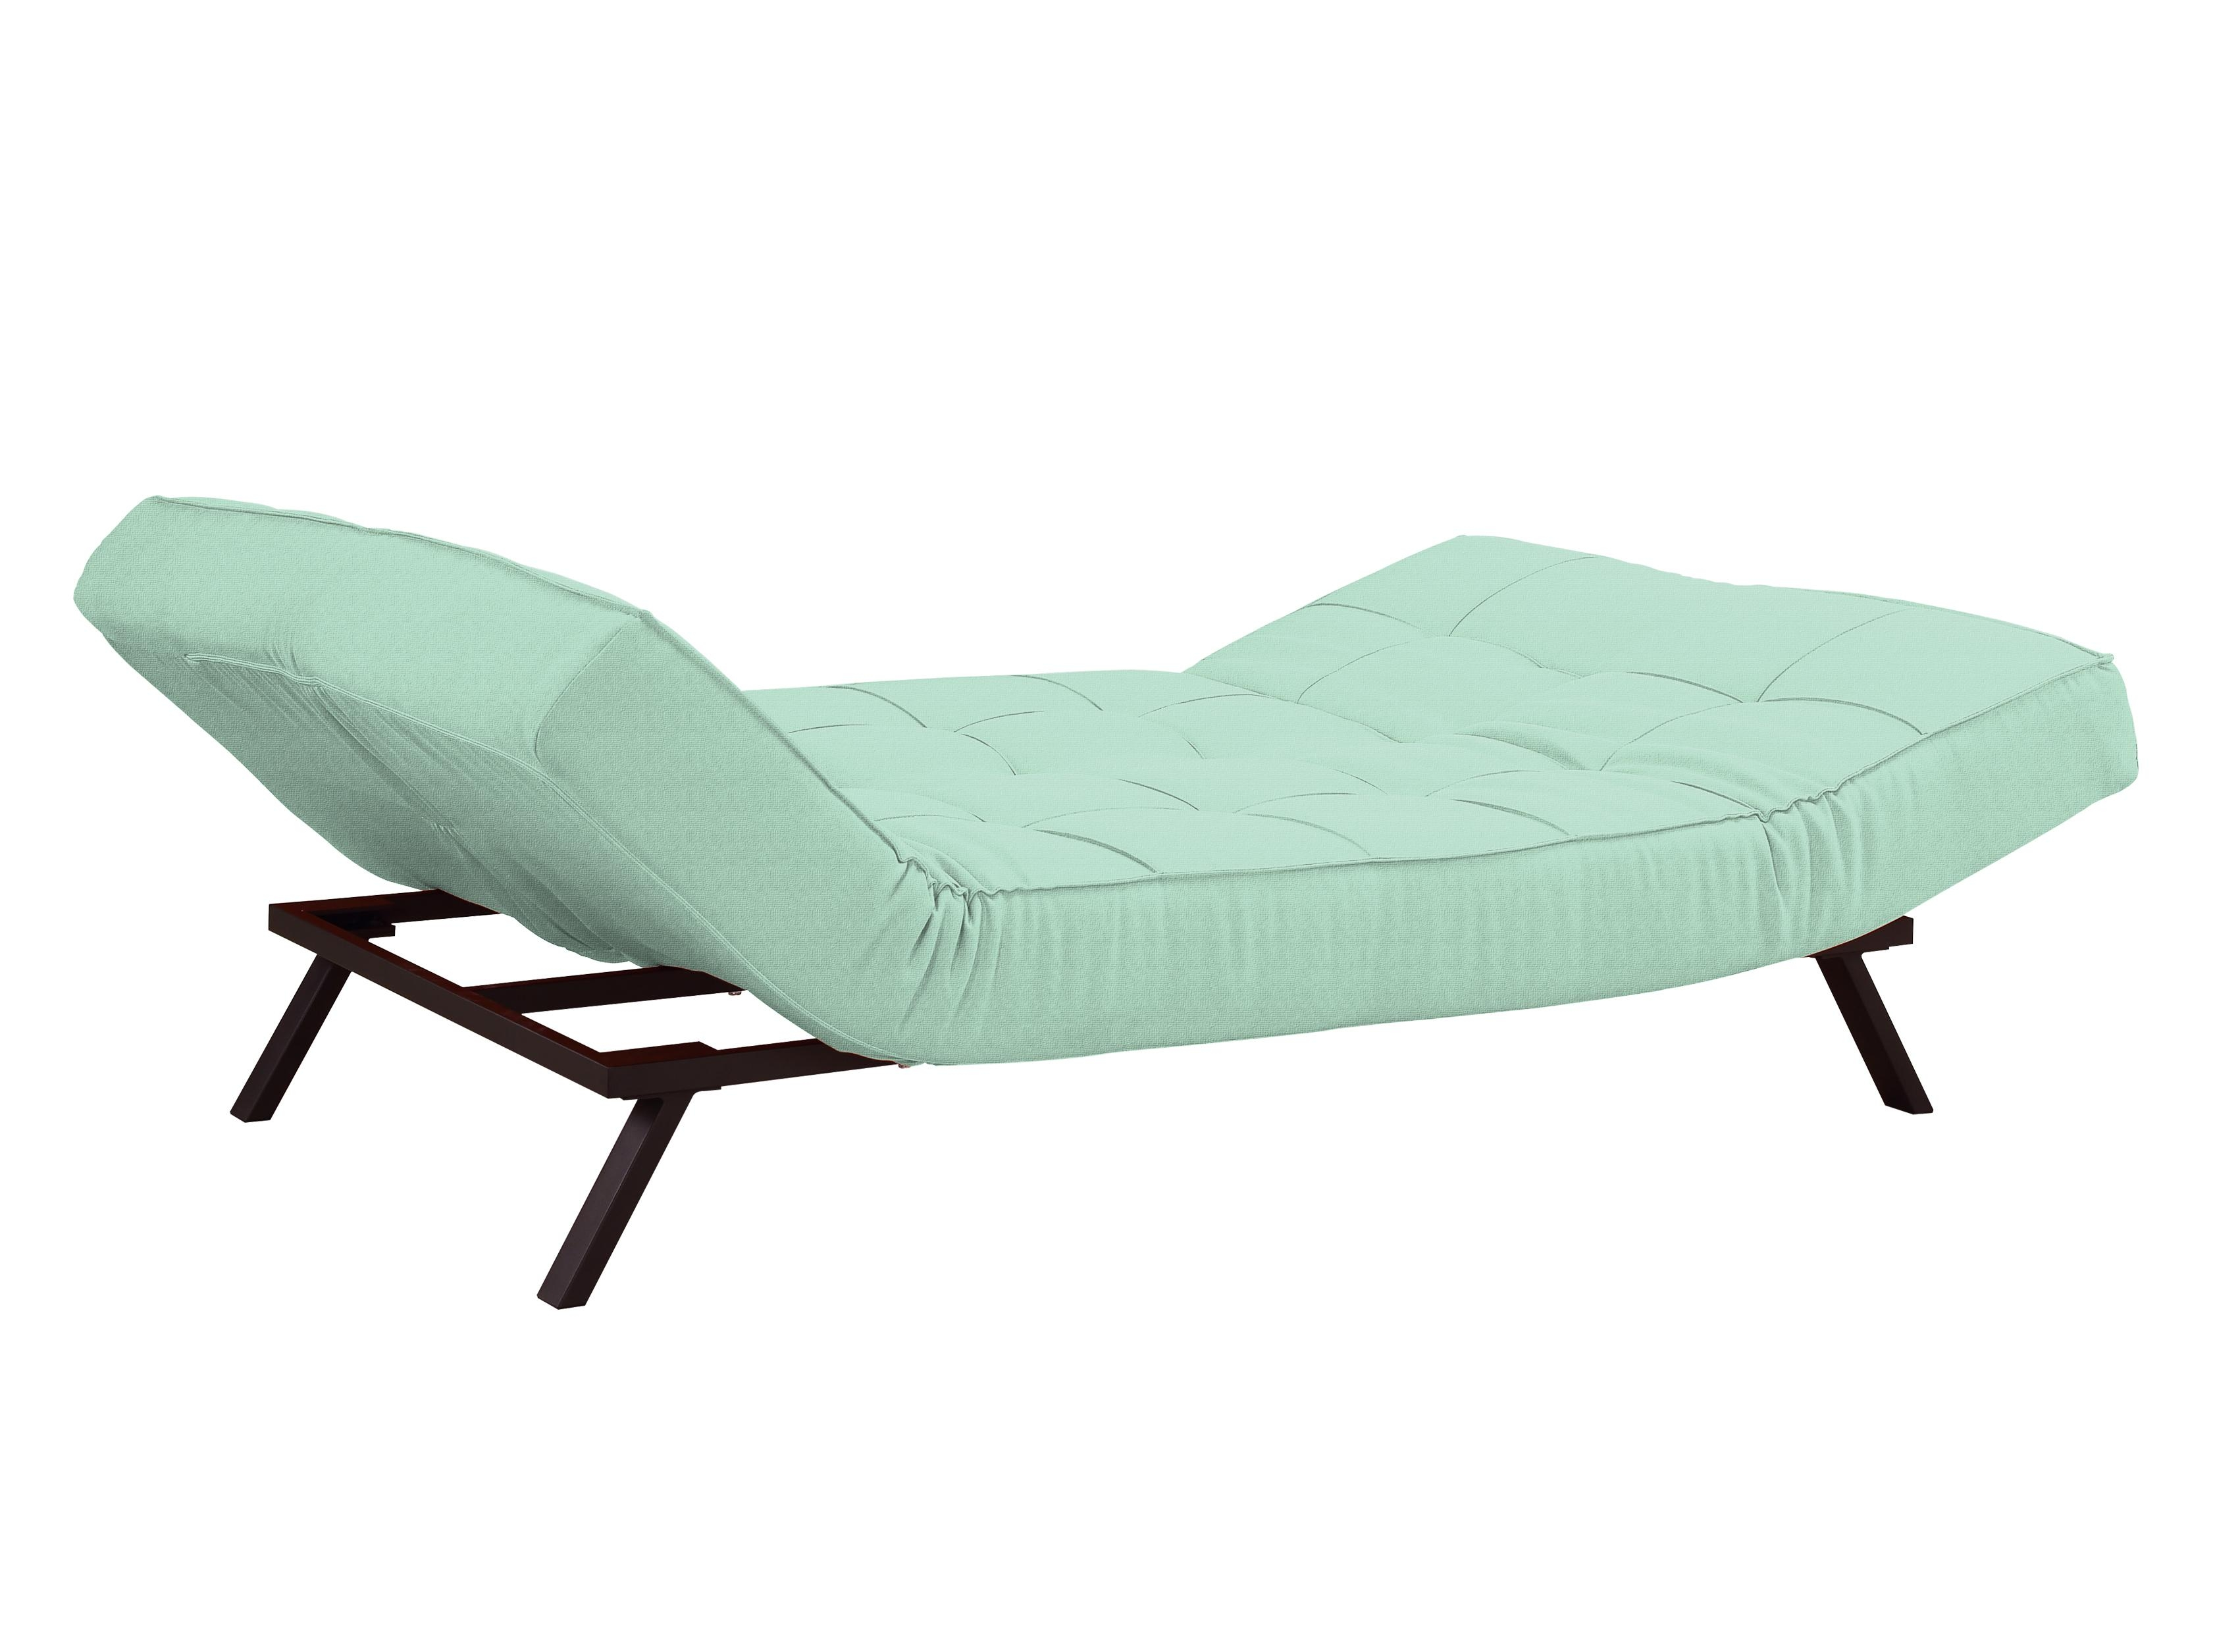 Copa Convertible Sofa Sea Foam Greenserta / Lifestyle Intended For Seafoam Green Sofas (Image 5 of 20)